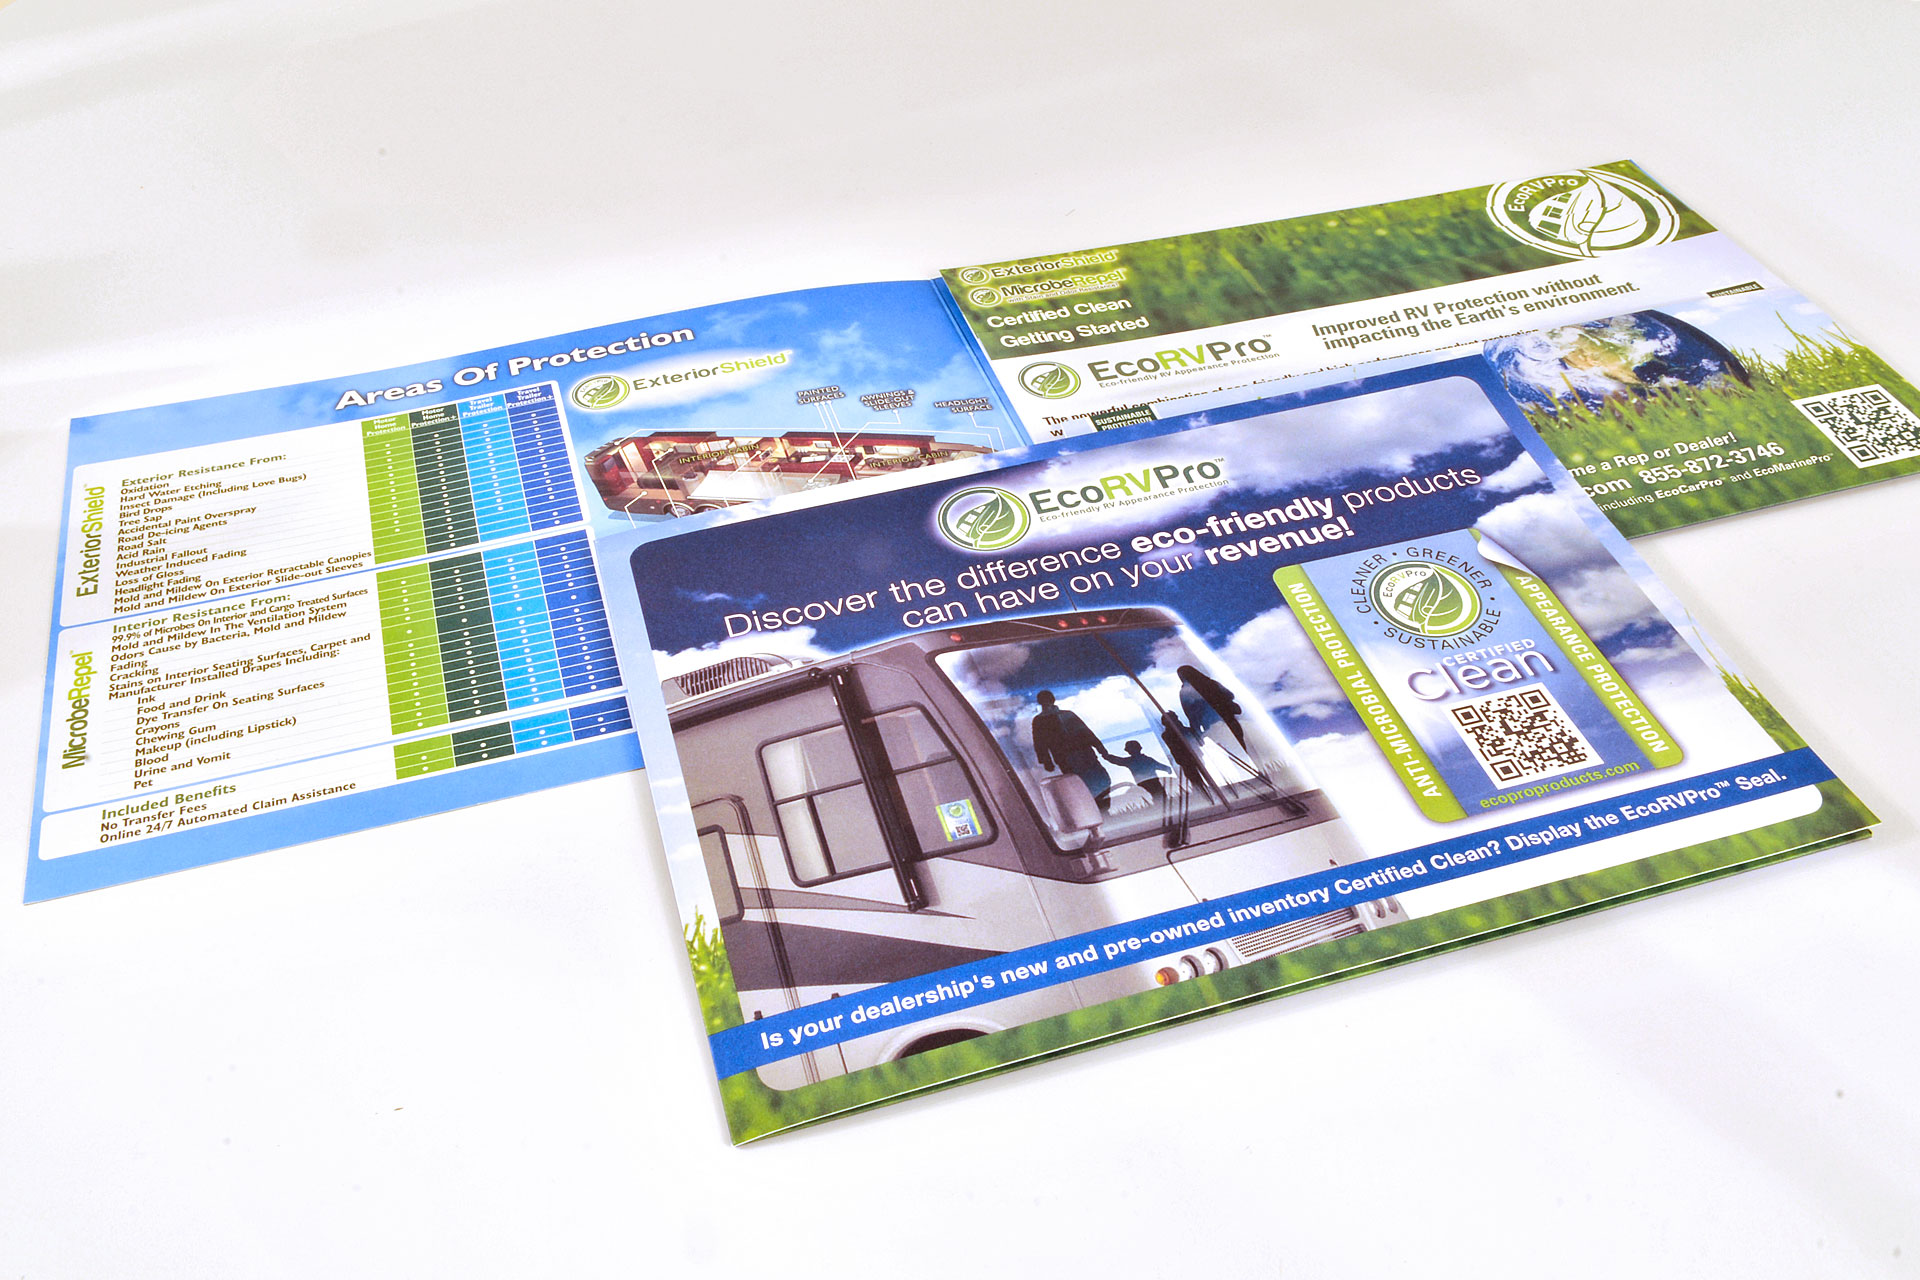 Eco friendly sustainable printed products full service print mail printed with soy reheart Choice Image